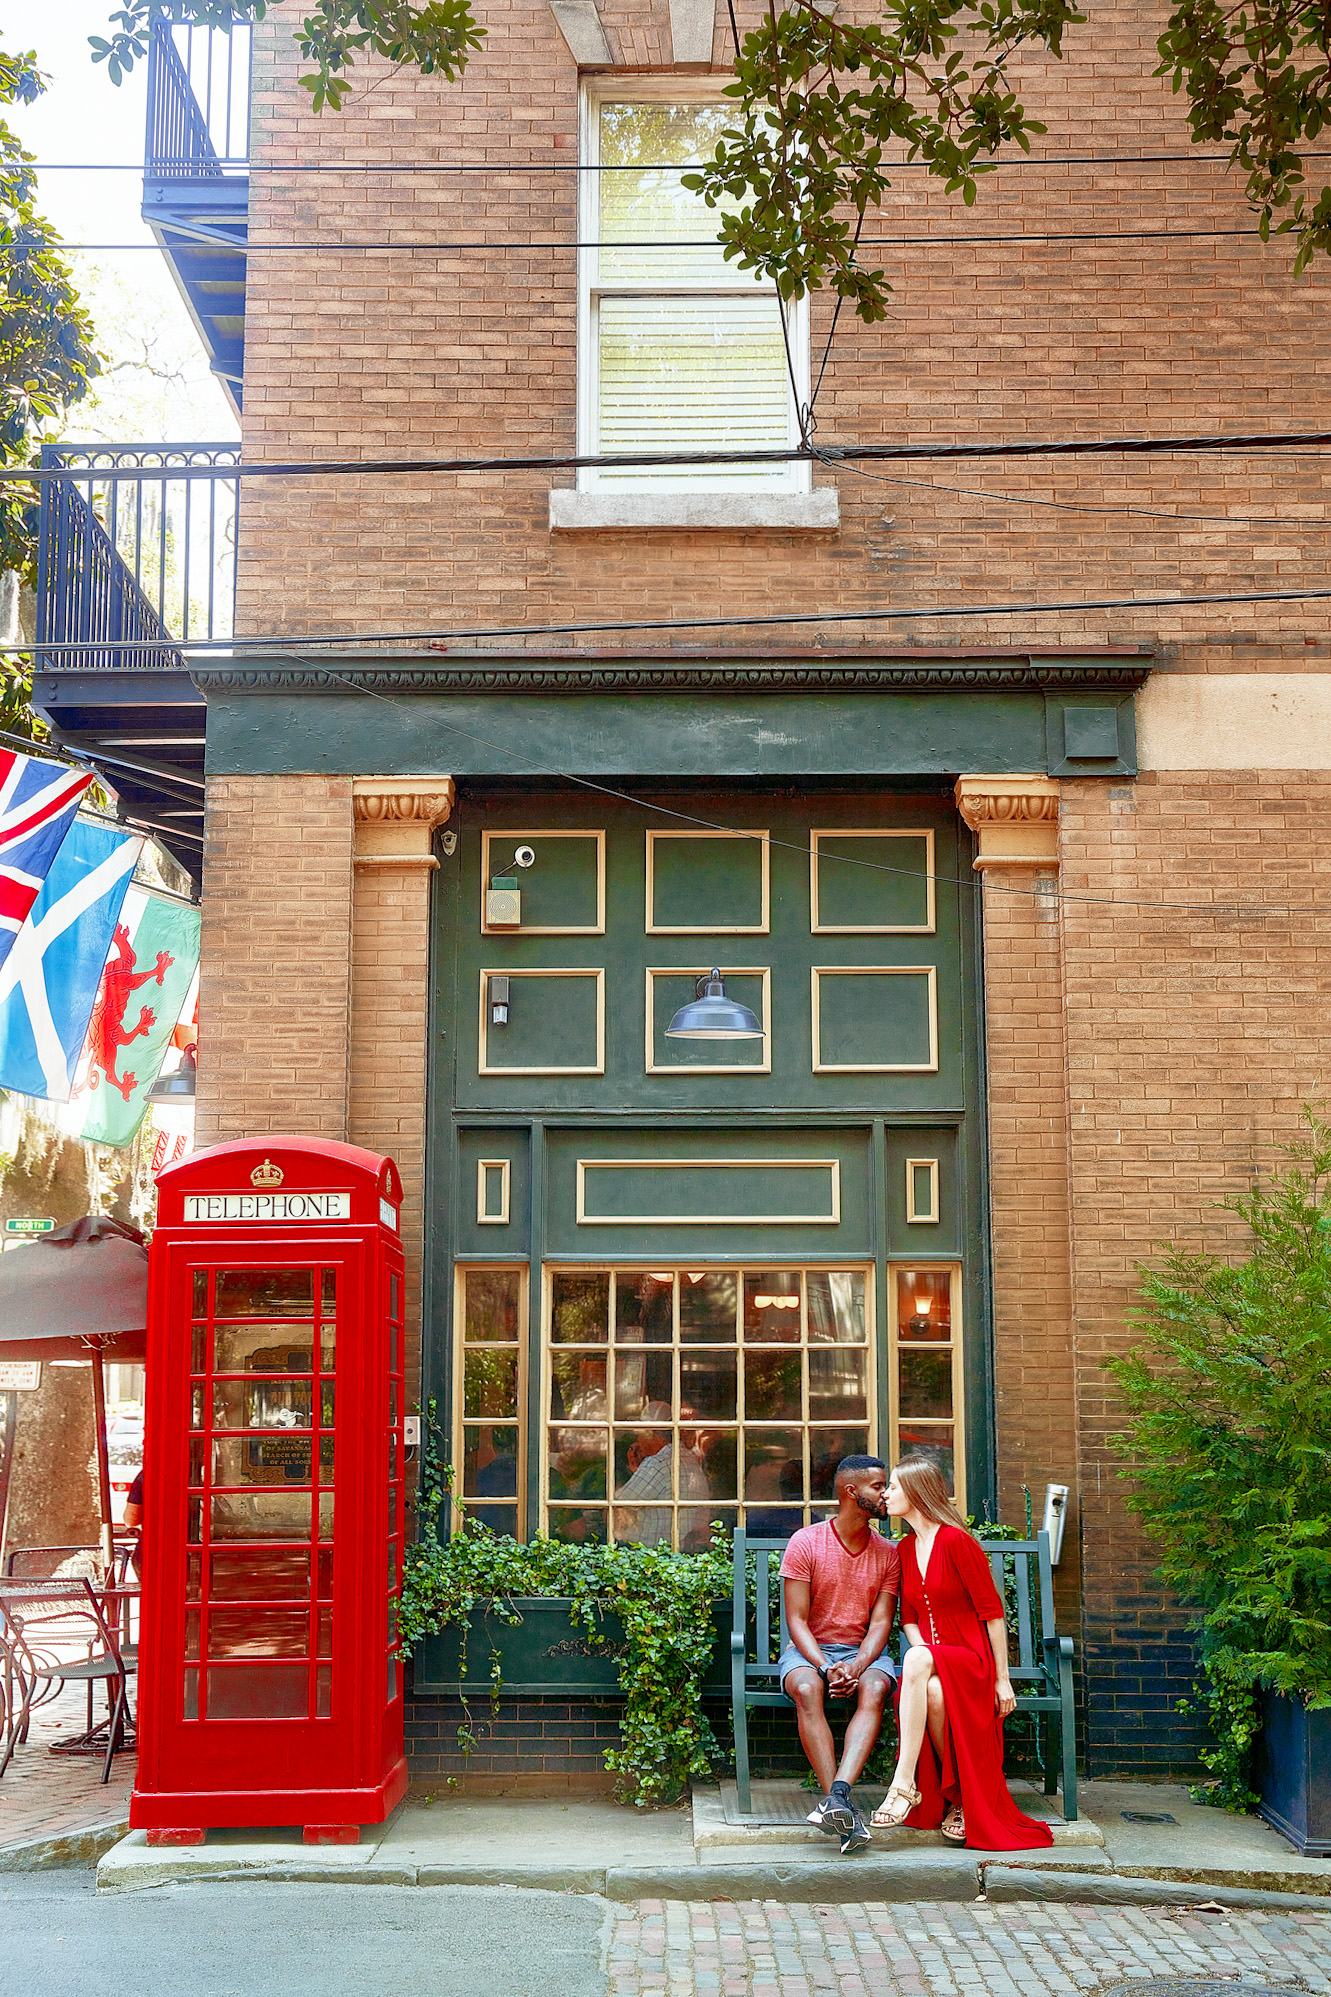 A couple sitting outside of a traditional British pub on a green bench. The Pub is mostly brick with green and yellow windows and trim. There is a classic British Telephone Booth next to a window looking into the pub. The couple is sitting on a green bench in front of the window and there is a window box with vines in front of the window. The woman in the couple is wearing a long red dress. The man in the couple is wearing a red heather shirt and denim blue shorts. They are kissing.